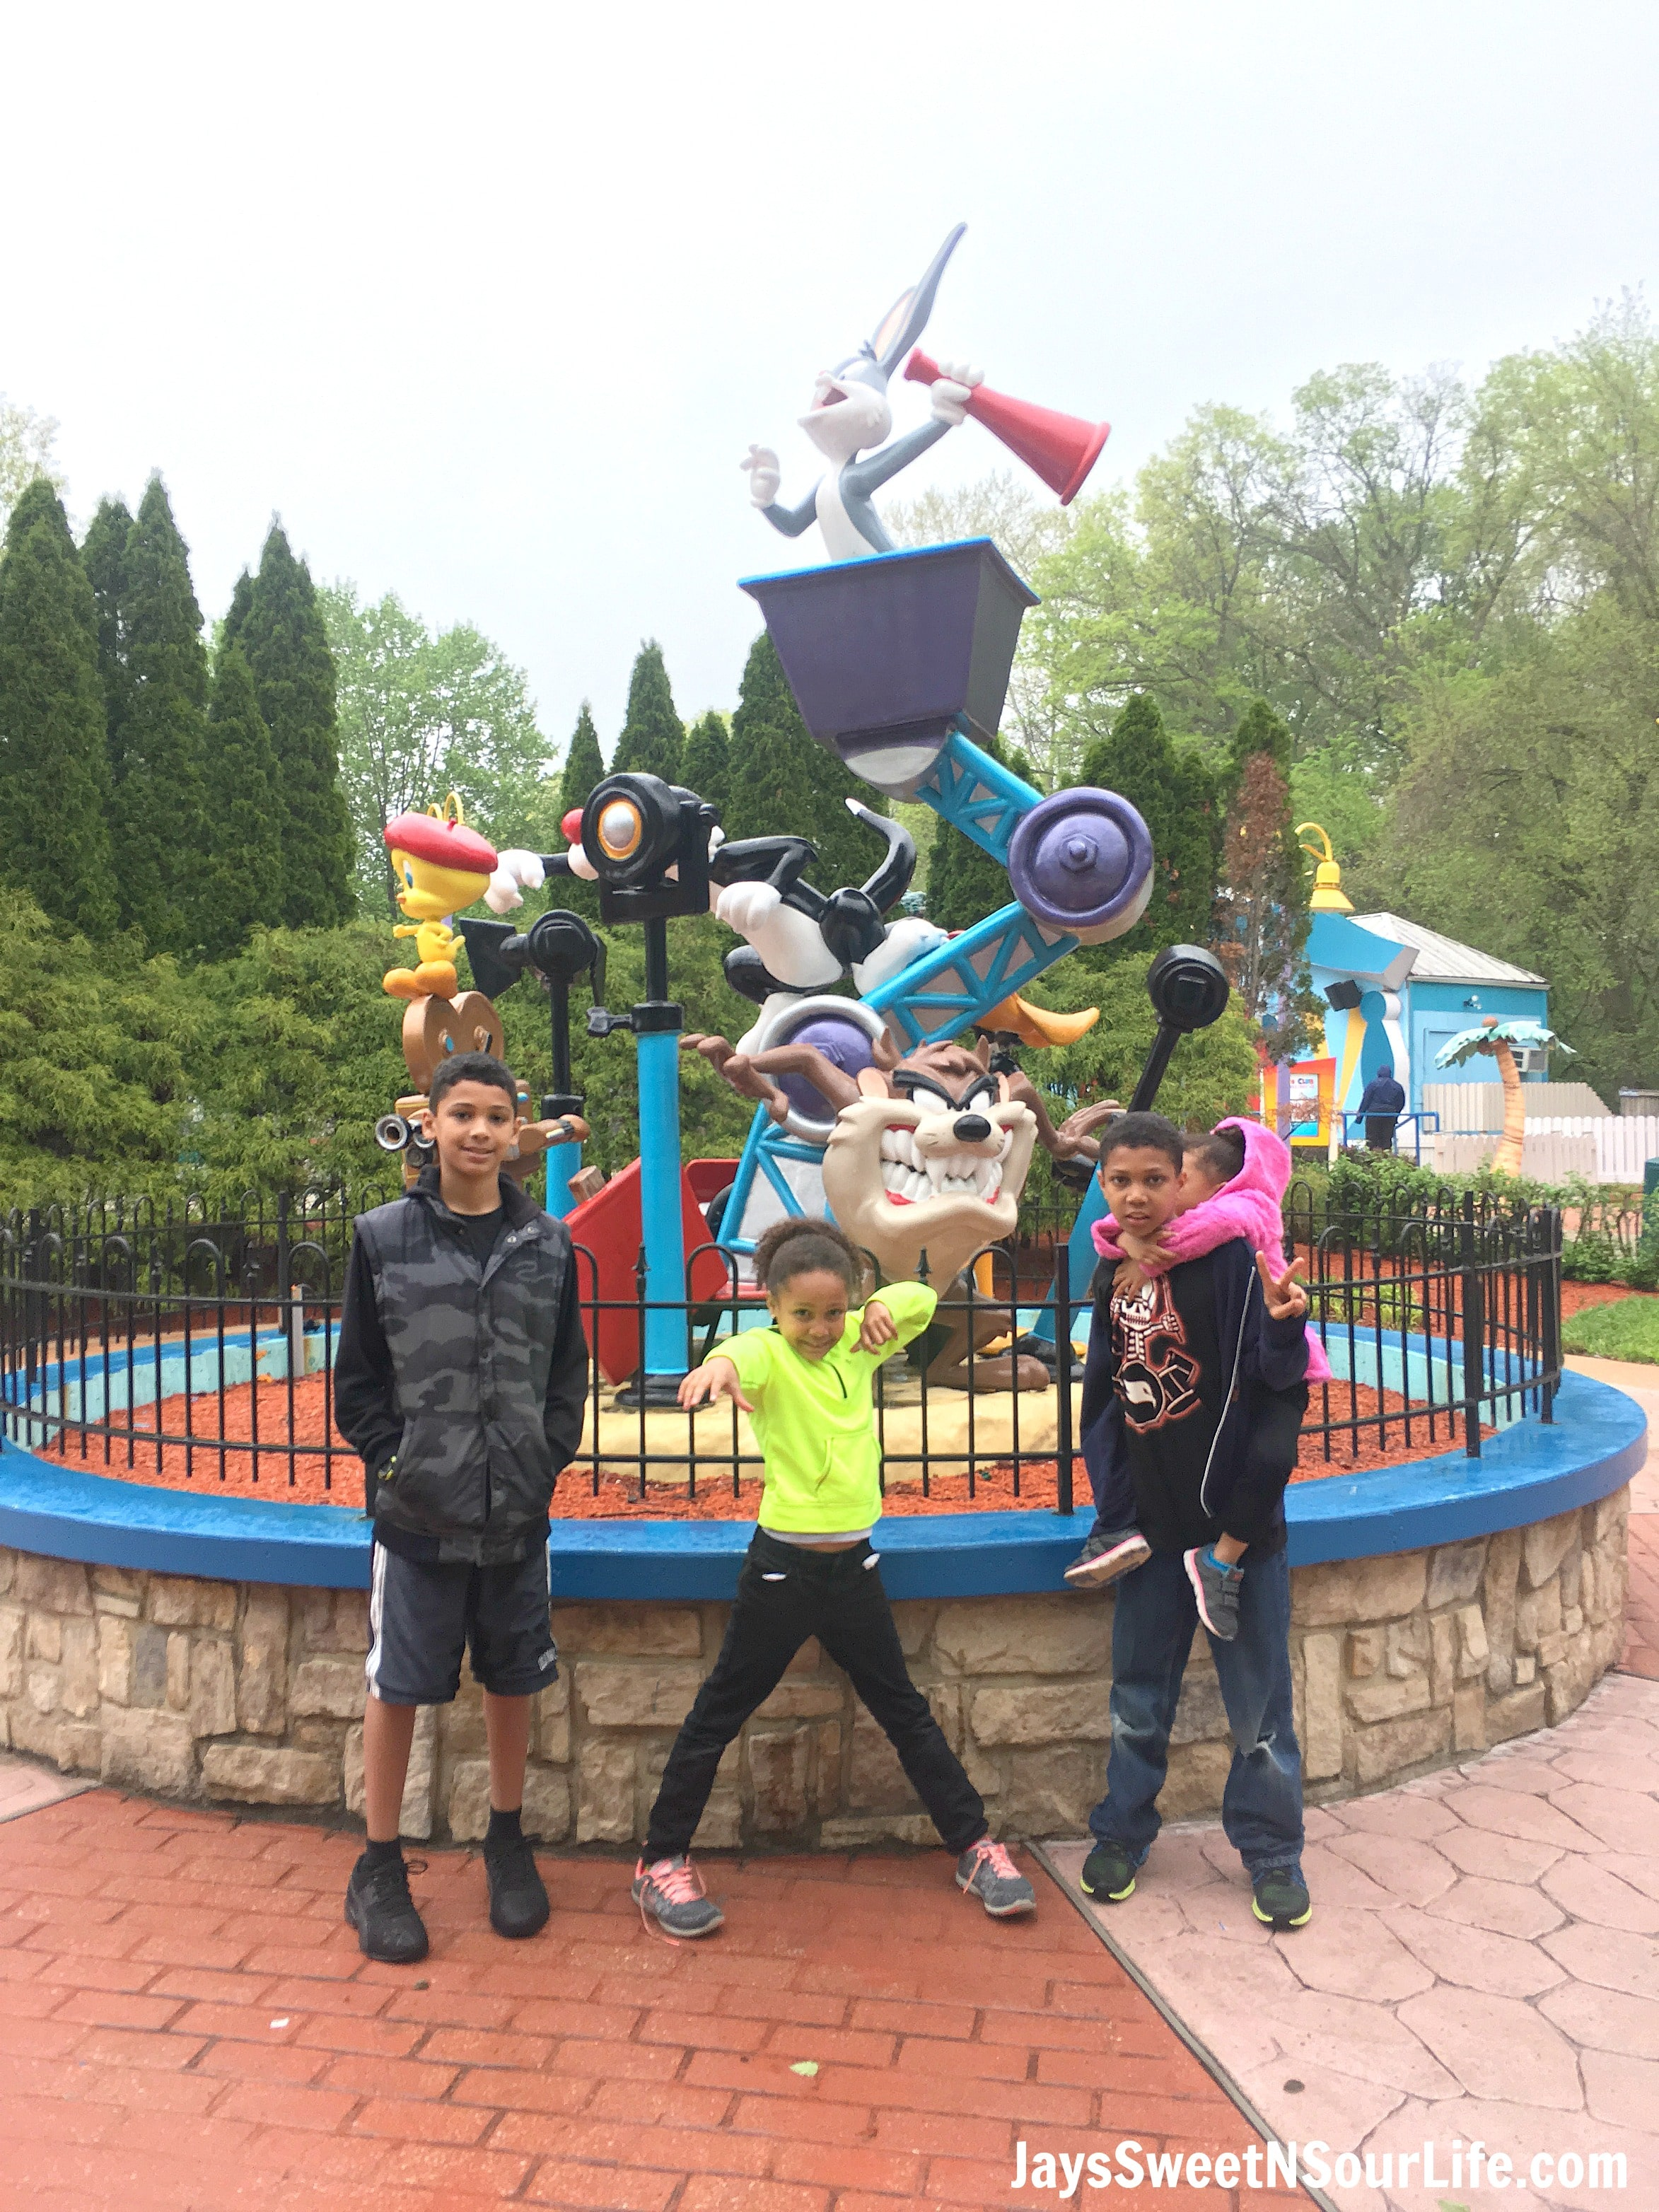 8 Tips For Rainy Day Fun At Six Flags America Kids Looney Toons. If you are planning a trip to Six Flags America and realized the weather calls for rain don't cancel your plans! These 8 Tips For Rainy Day Fun At Six Flags America will save the day.